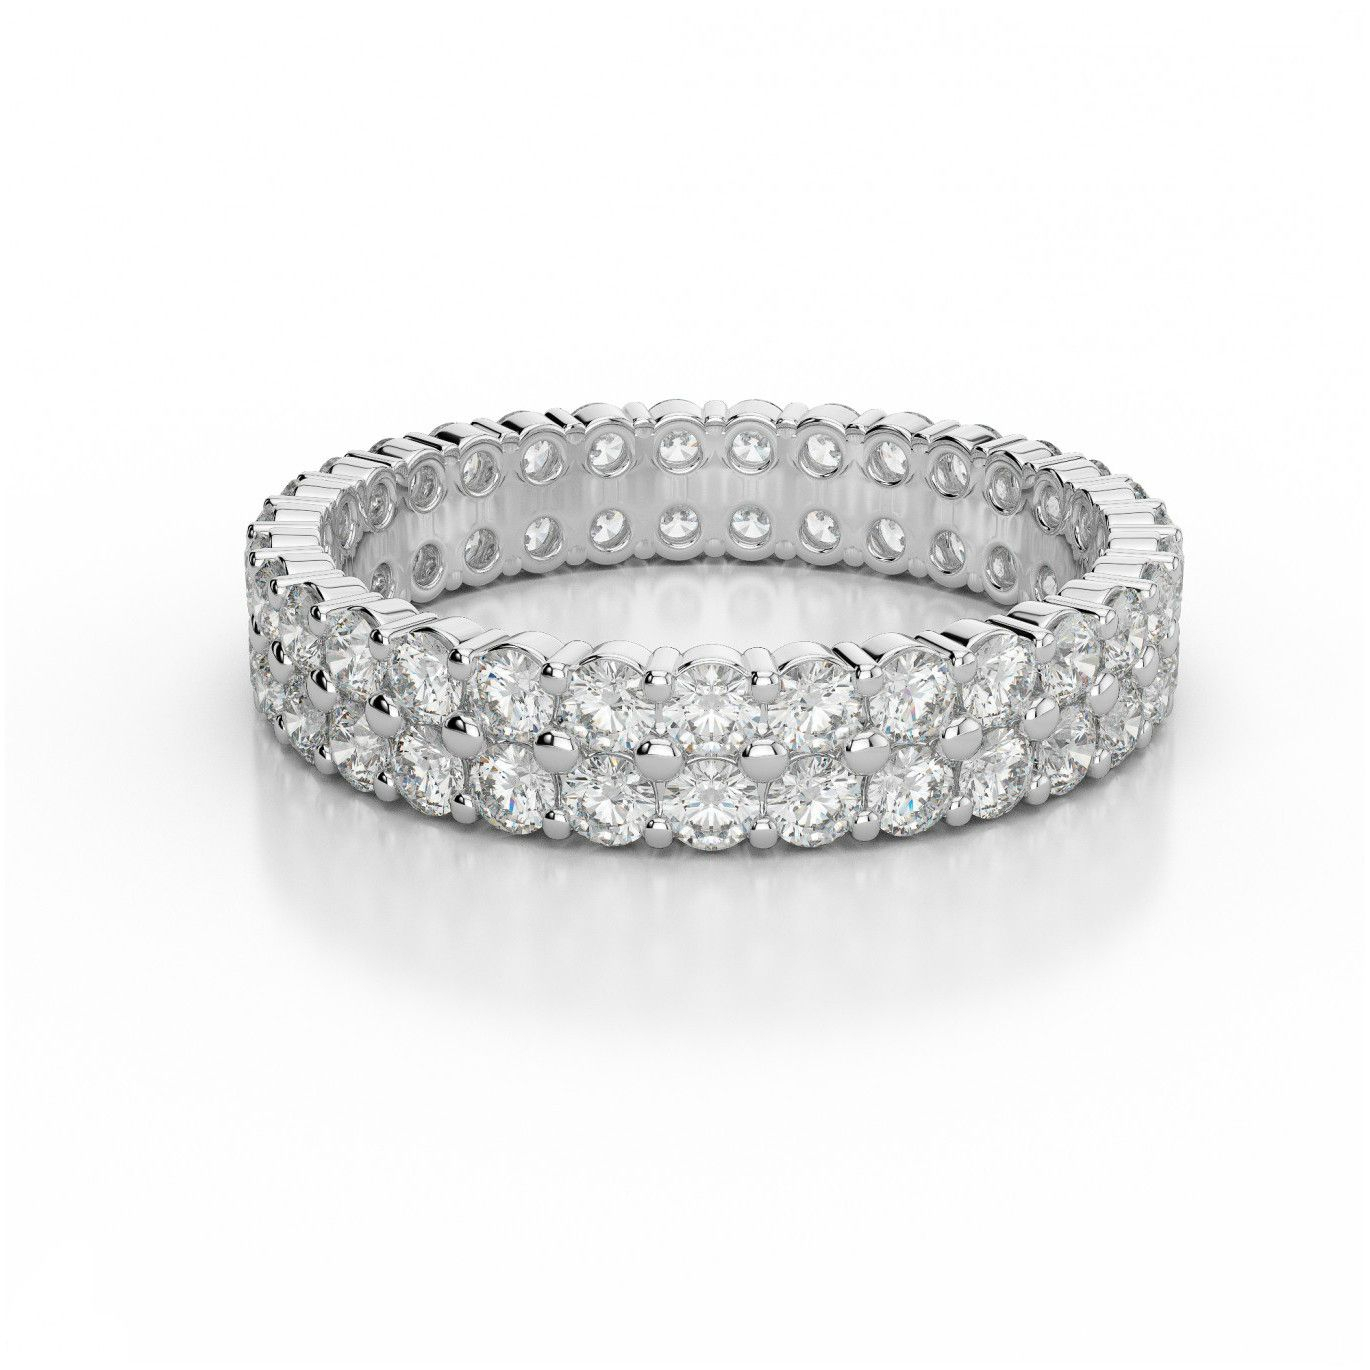 Two Row Diamond Eternity Band 14k White Gold – Diamond Within Most Recently Released Diamond Two Row Anniversary Bands In White Gold (View 6 of 25)